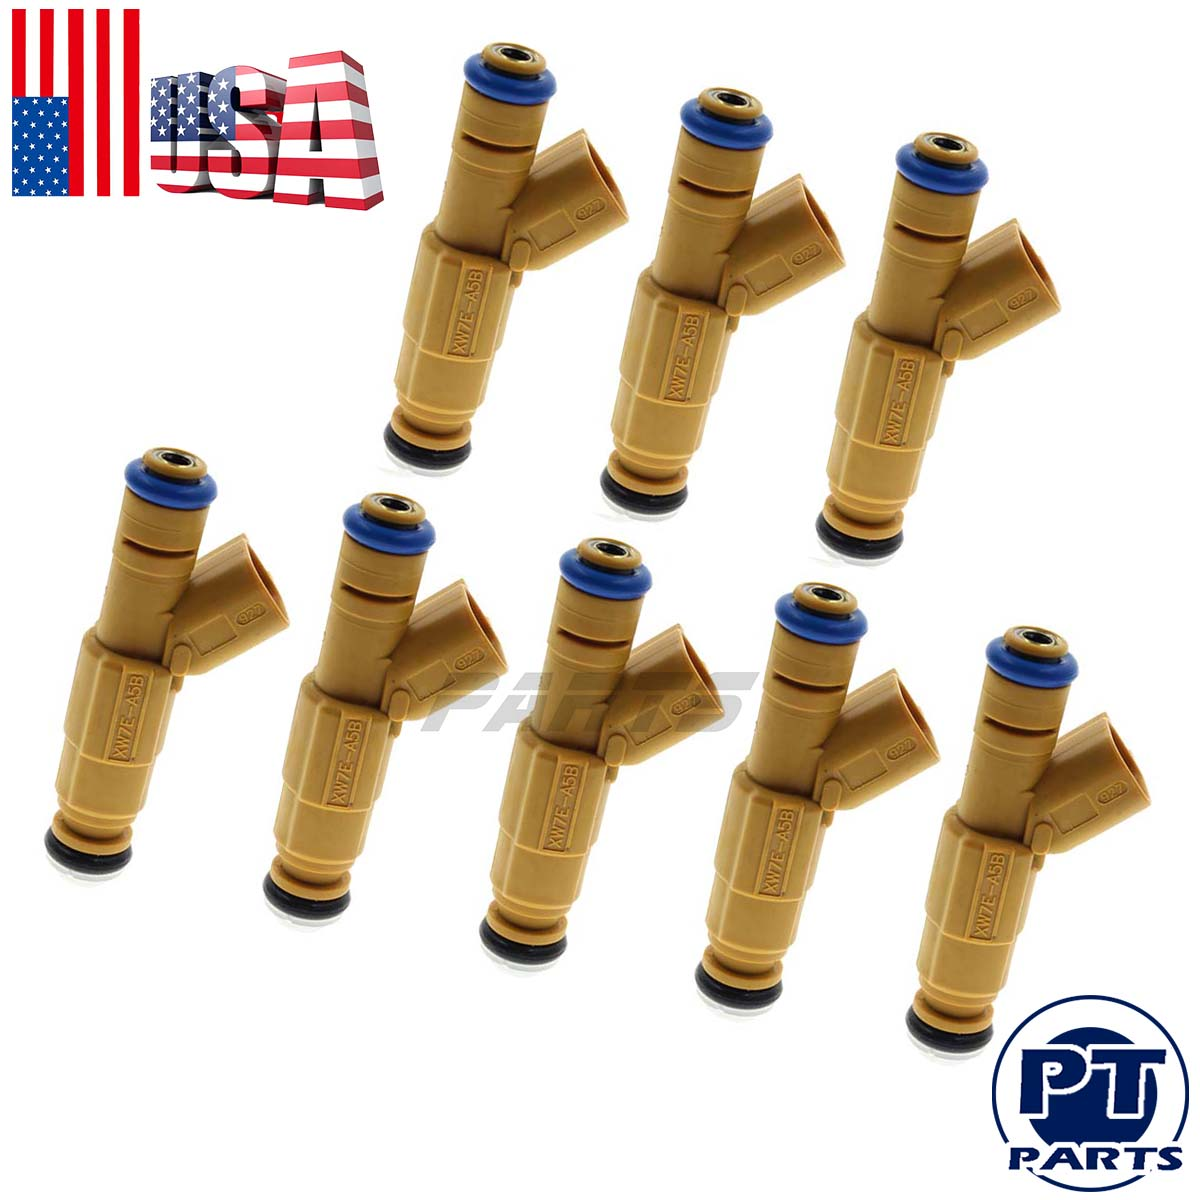 8 GENUINE OEM BOSCH FUEL INJECTORS 0280155857 1999-2001 FORD LINCOLN MERC 4.6 V8